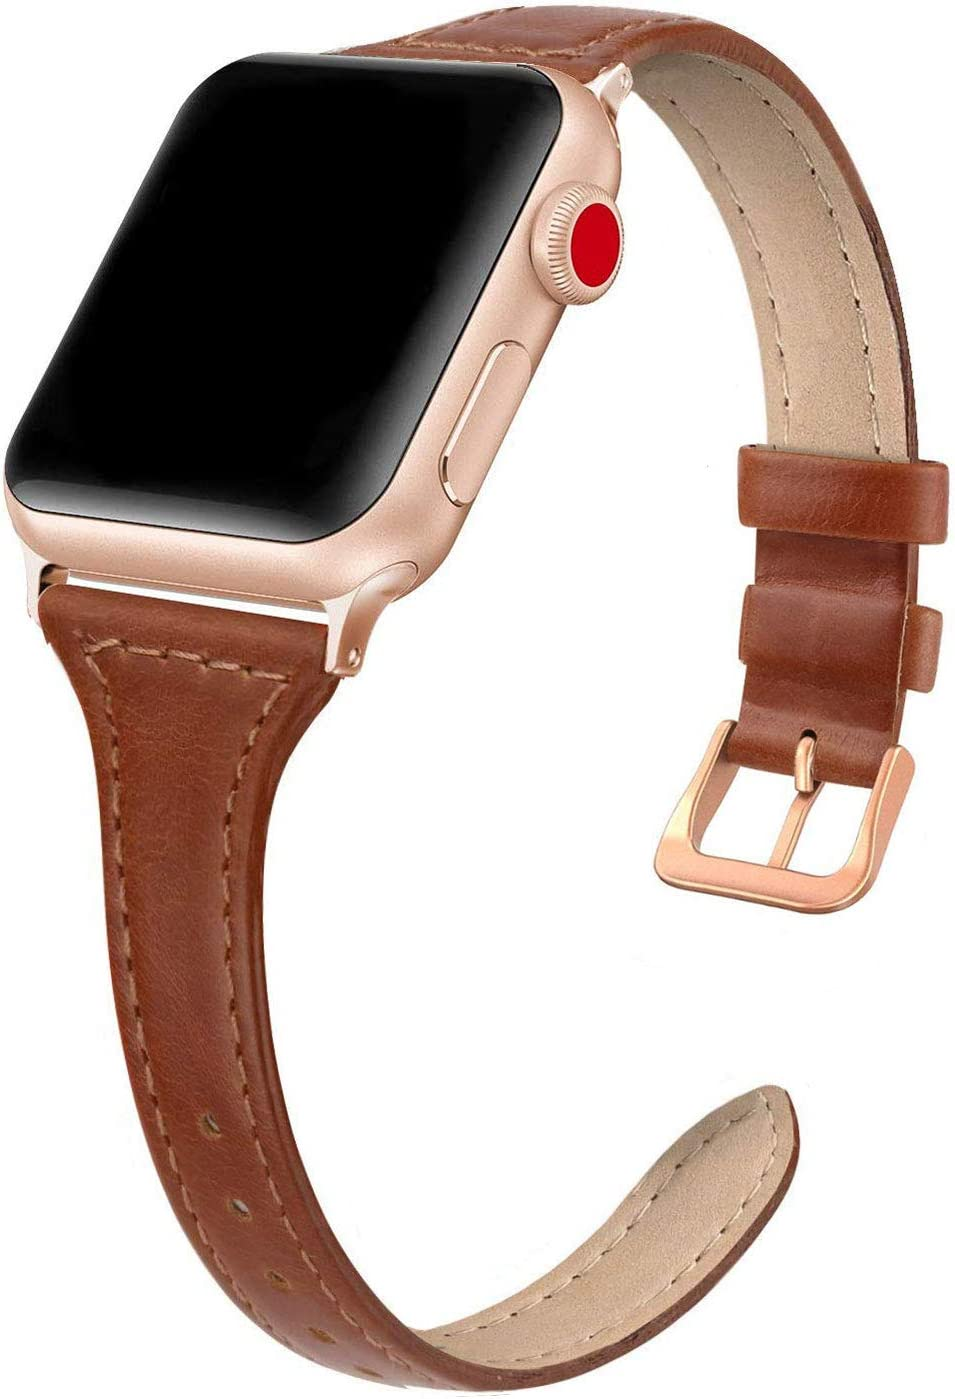 SWEES Leather Band Compatible for iWatch 38mm 40mm, Slim Thin Dressy Genuine Leather Strap Compatible for iWatch Series 6, 5, 4, 3, 2, 1, SE, Sport & Edition Women, Cognac Brown